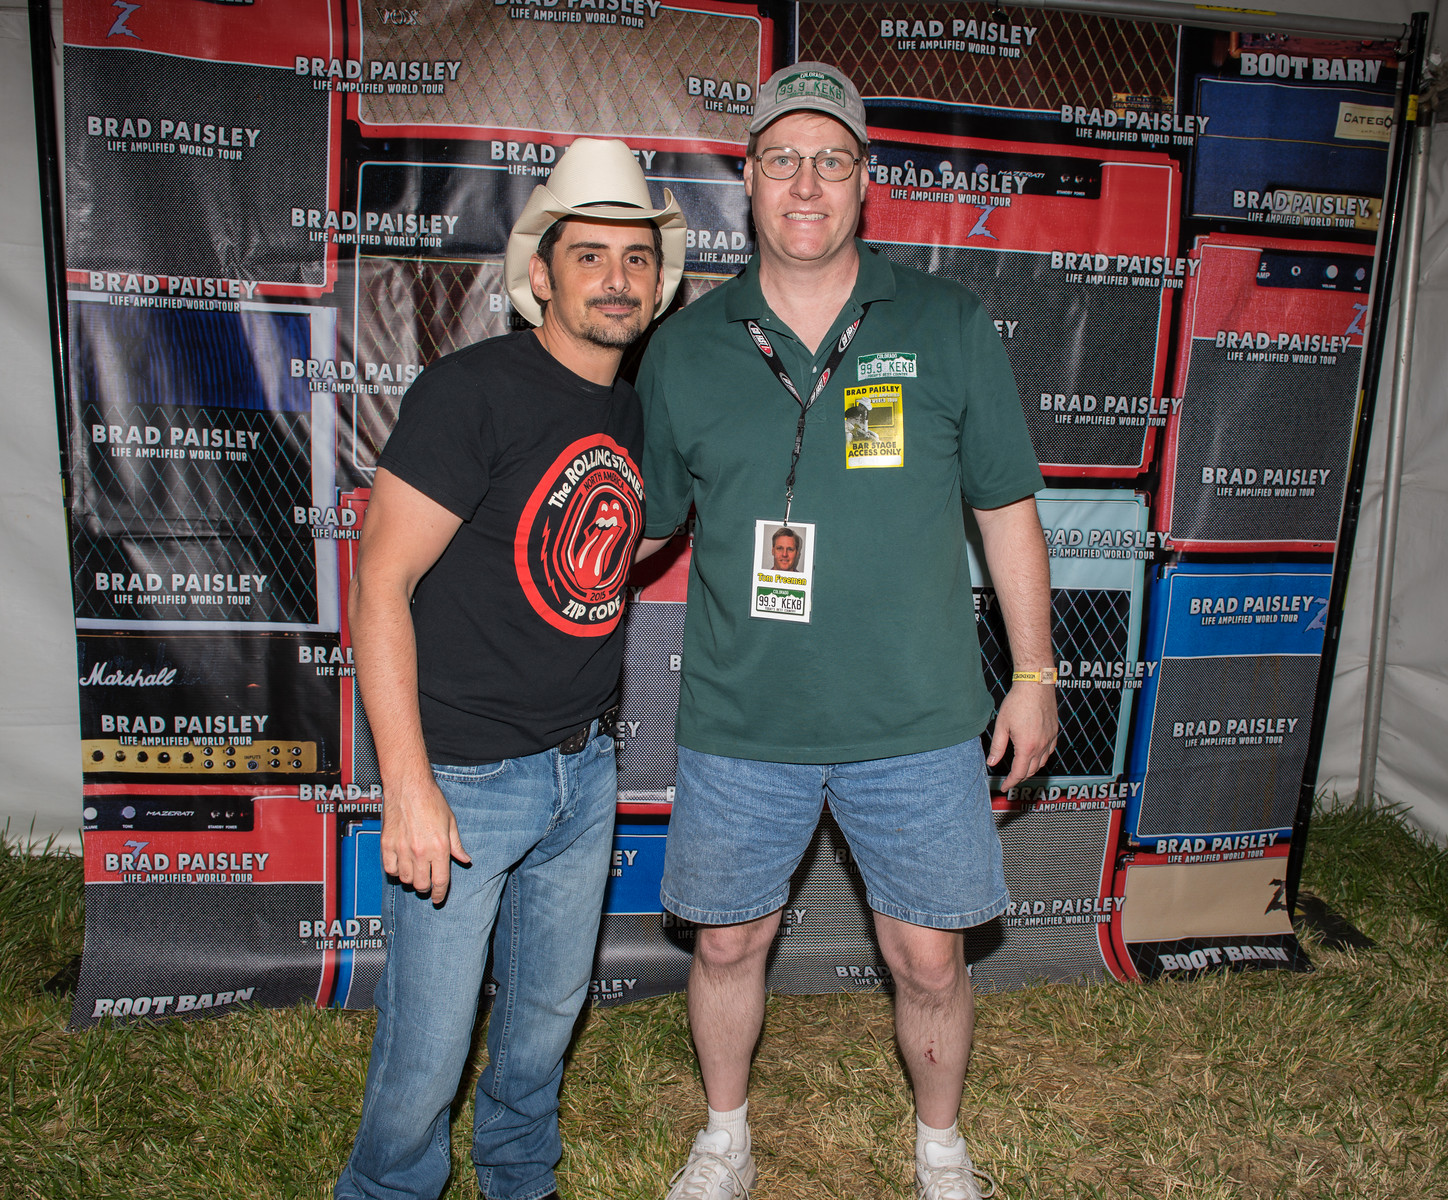 brad paisley meet and greet